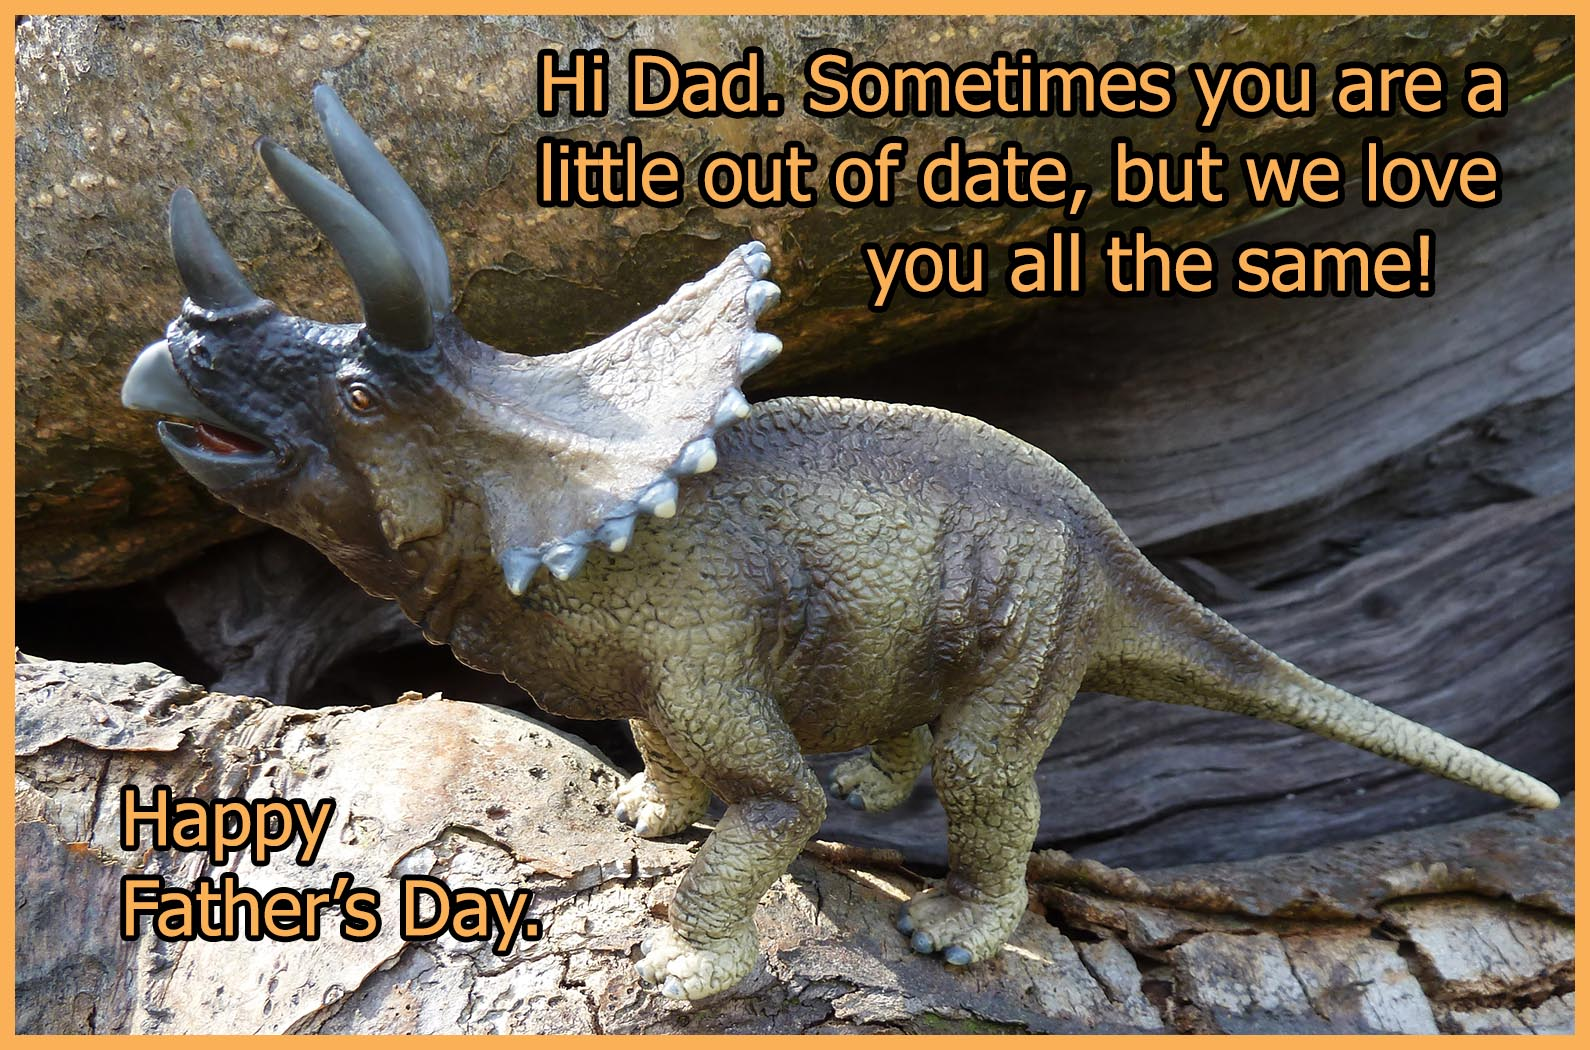 dinosaur greeting card for father's day